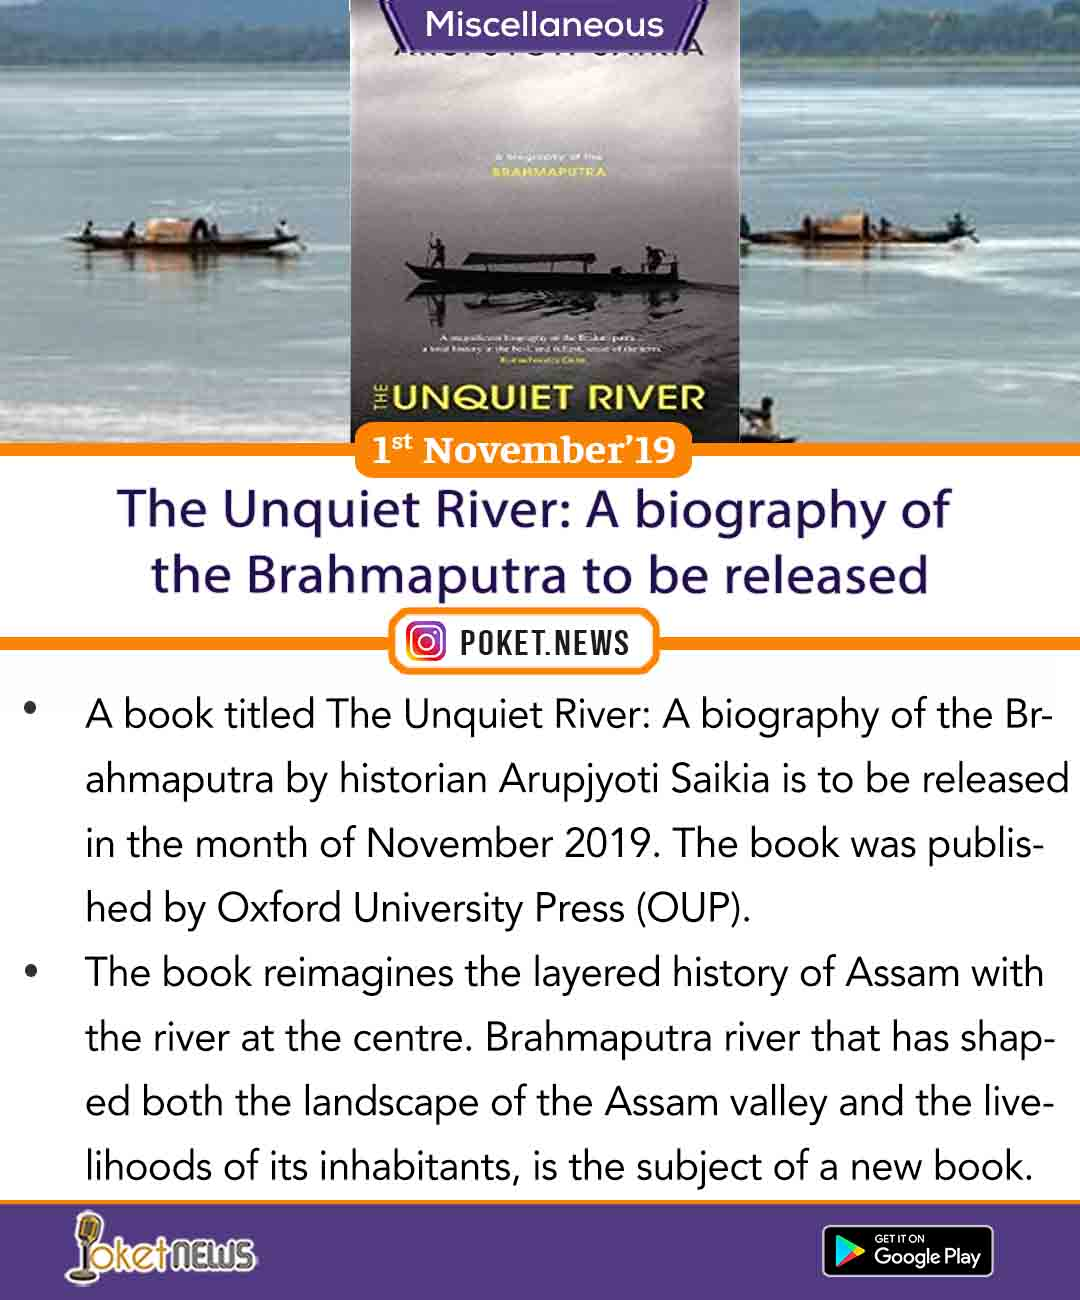 The Unquiet River: A biography of the Brahmaputra to be released